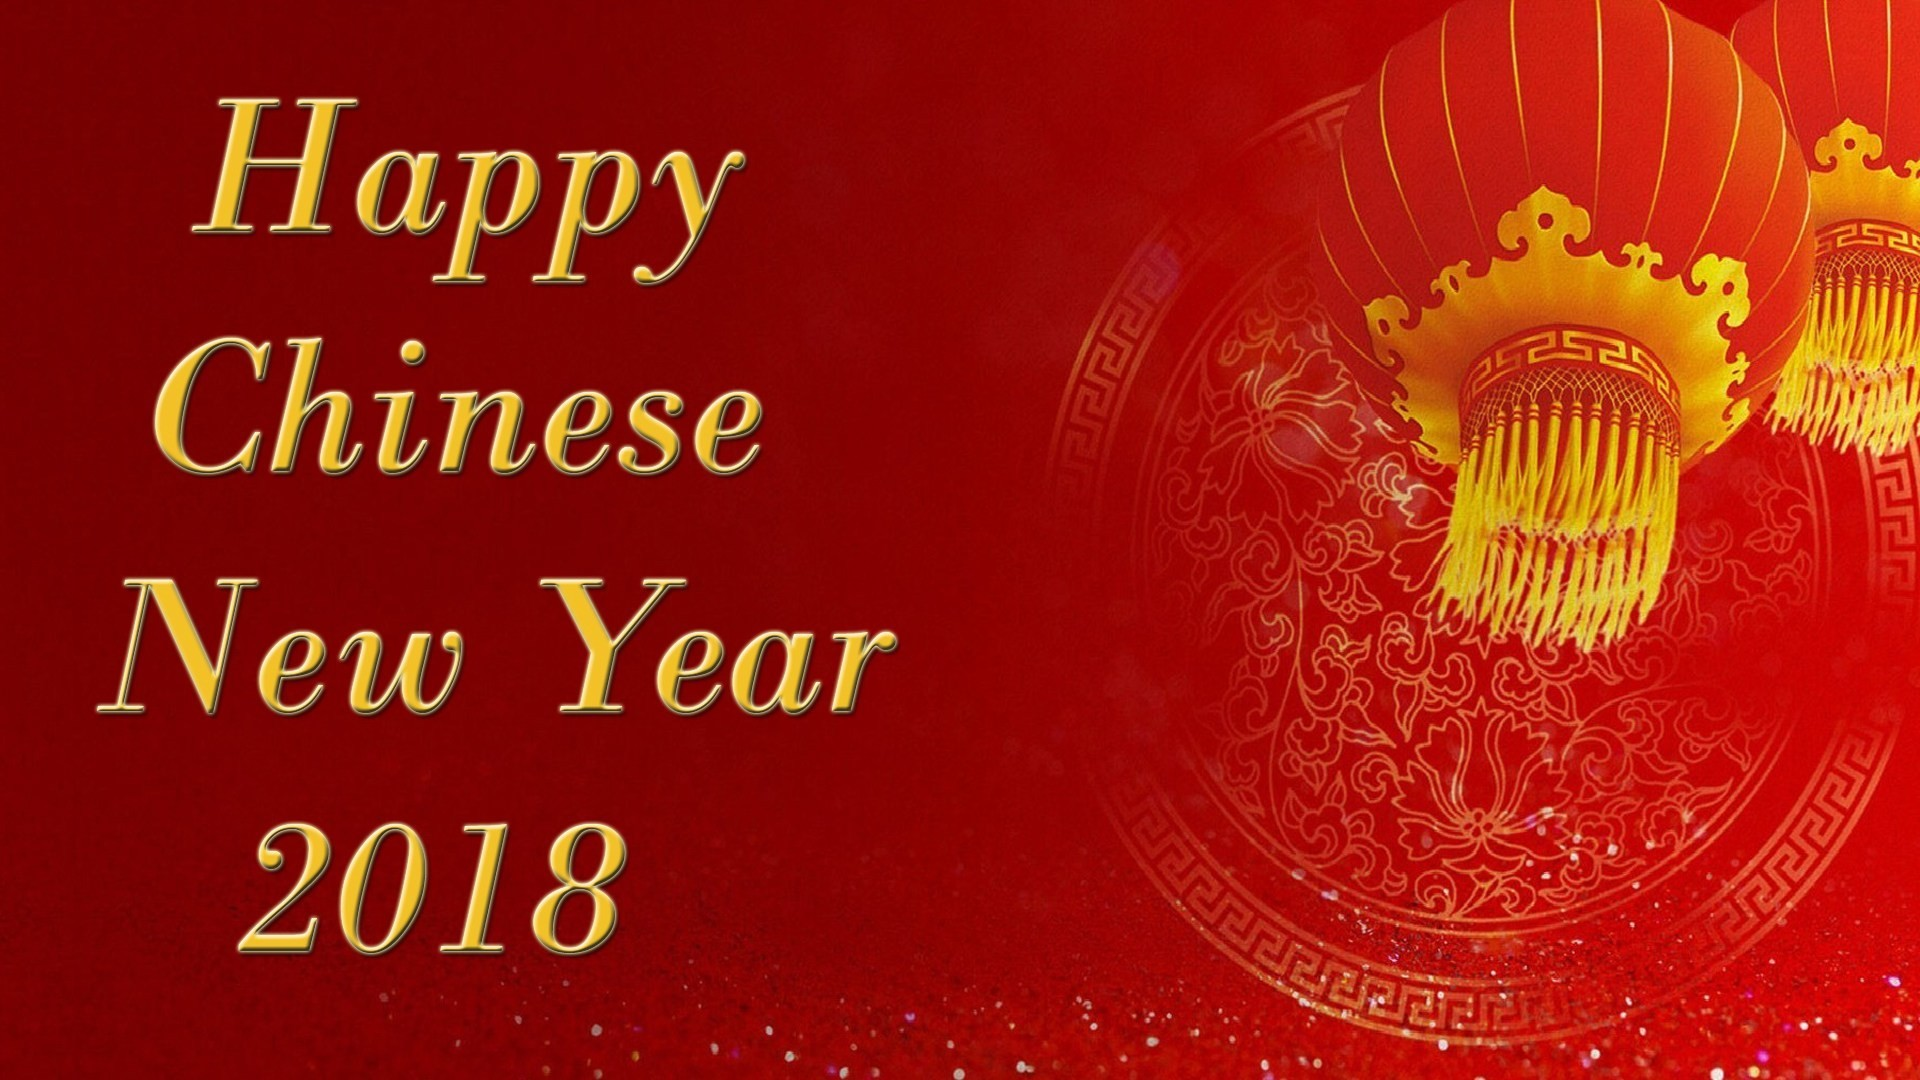 1920x1080 Happy Chinese New Year 2018 Images